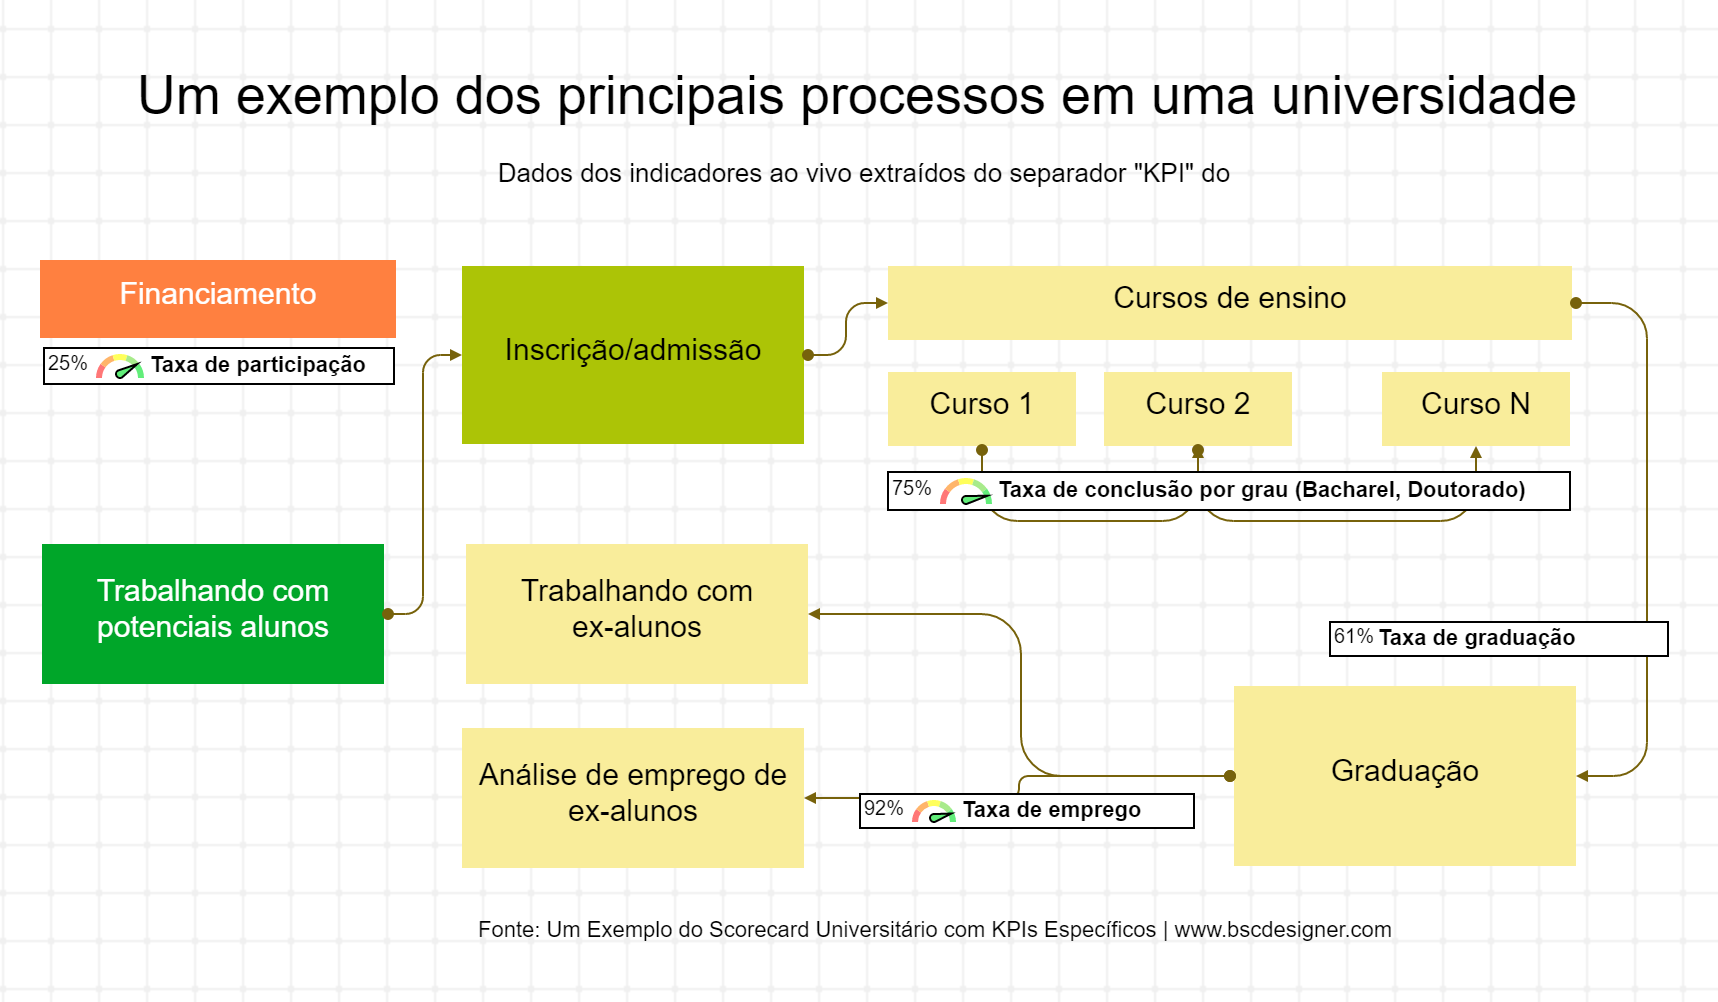 An example of the main processes in a university